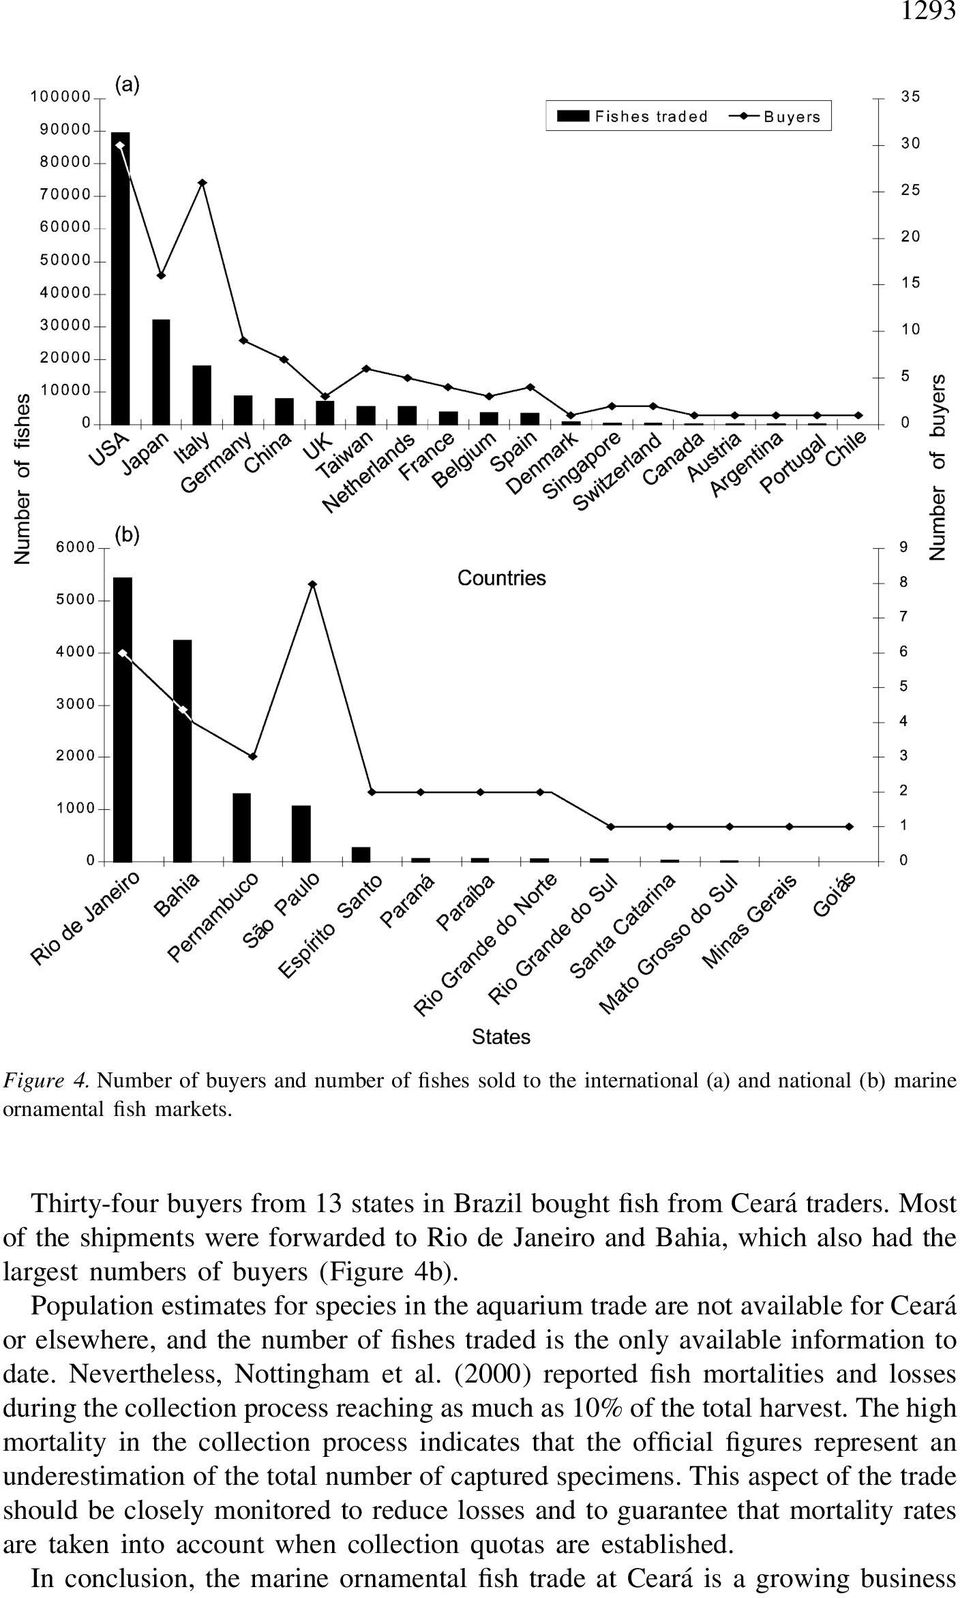 Population estimates for species in the aquarium trade are not available for Ceara or elsewhere, and the number of fishes traded is the only available information to date.